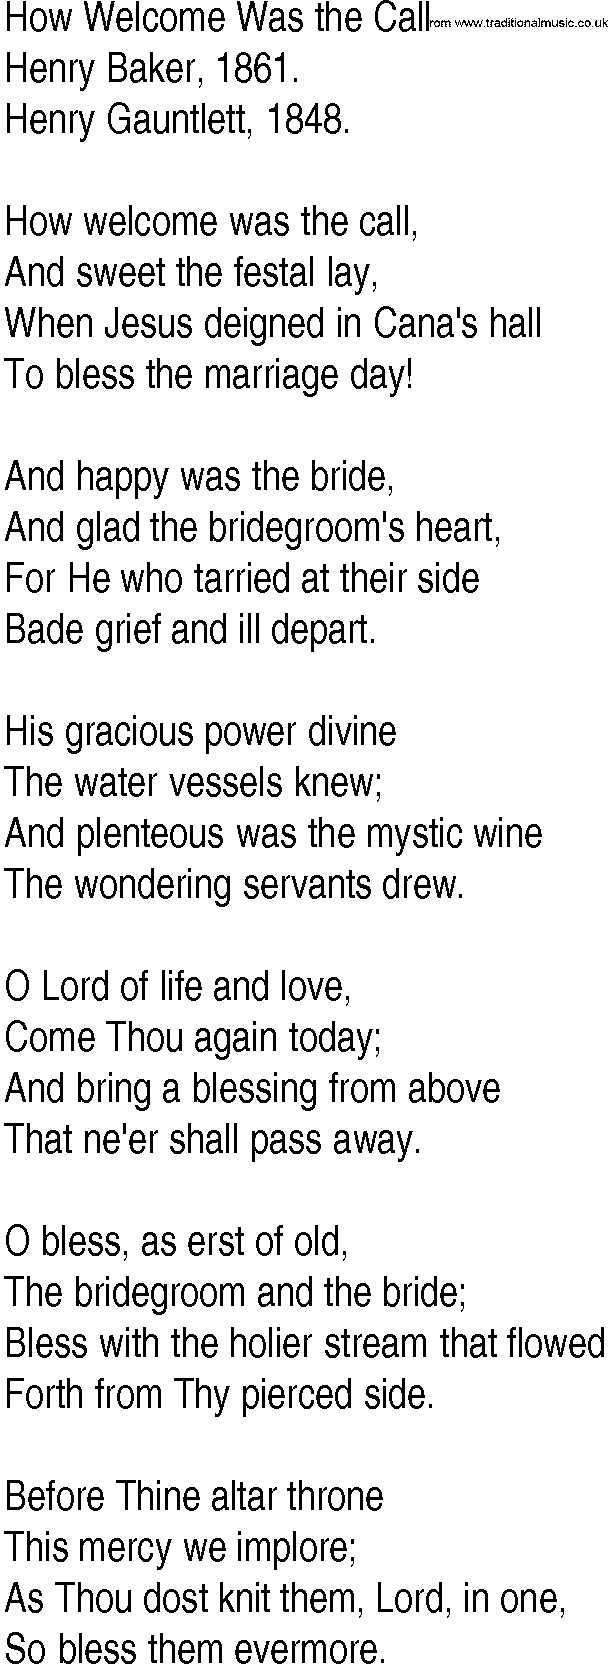 Hymn and Gospel Song Lyrics for How Welcome Was the Call by